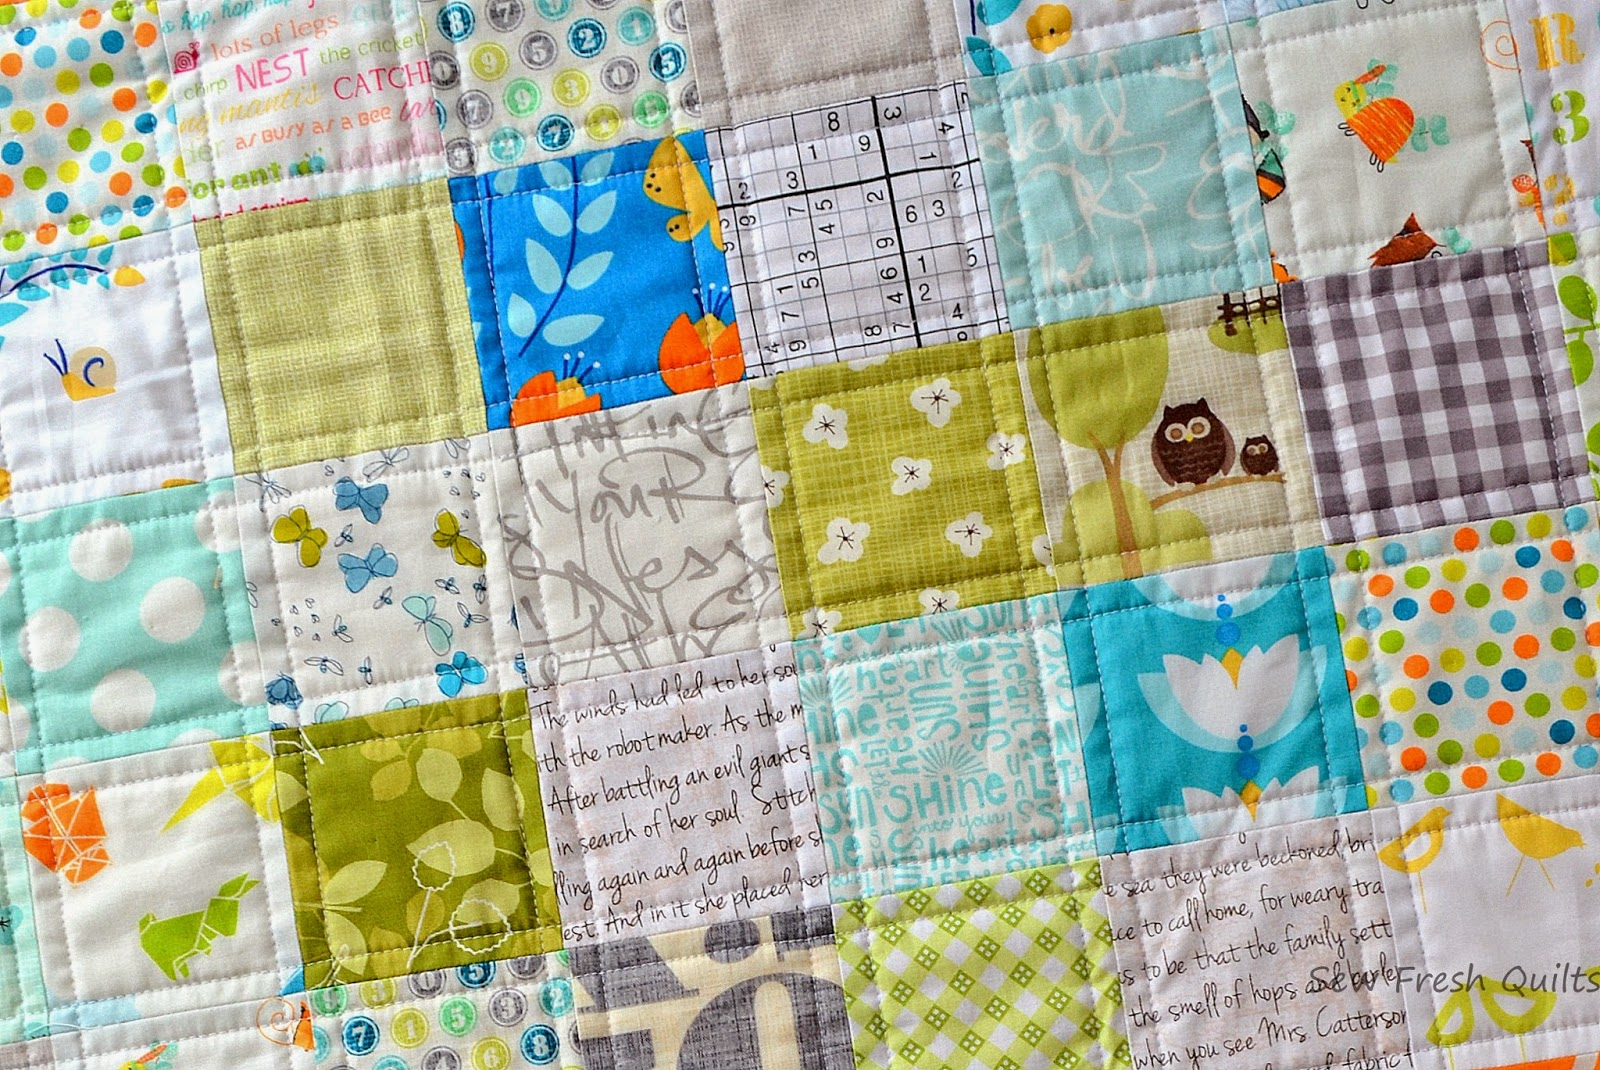 Sew fresh quilts top 10 tips for new quilters quilting with custom order baby quilt with straight line quilting jeuxipadfo Gallery